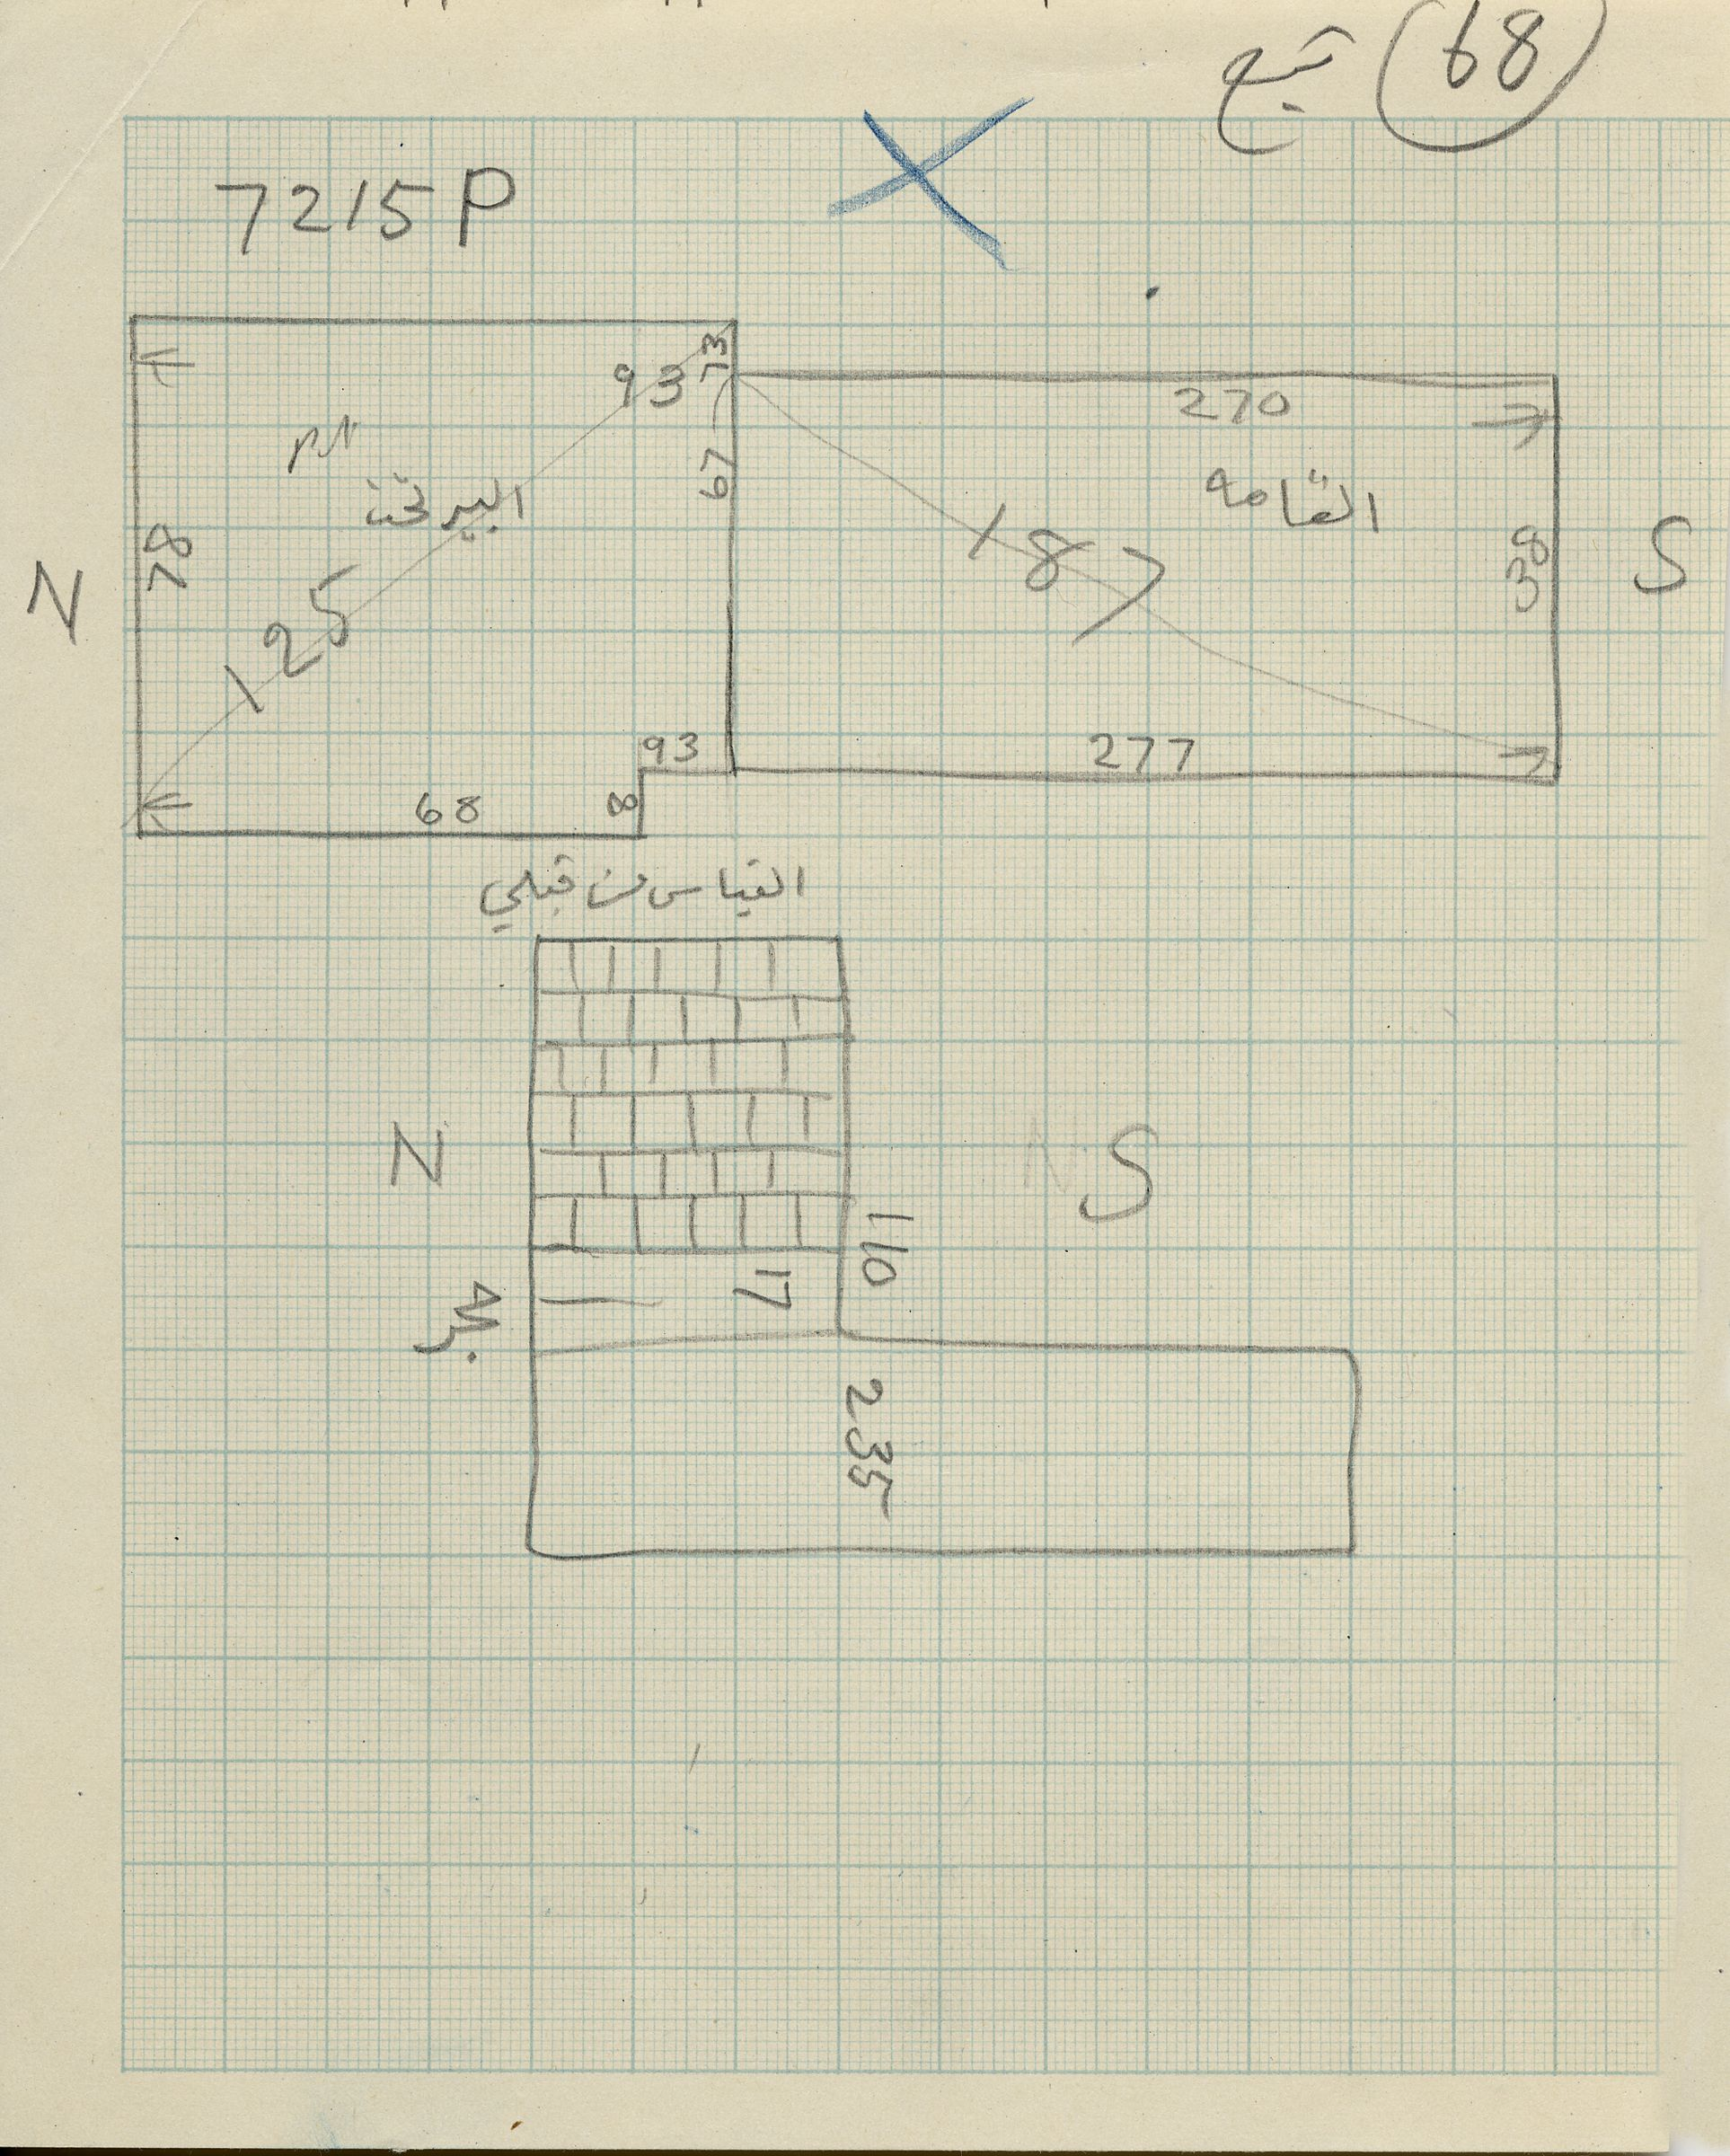 Maps and plans: G 7215, Shaft P